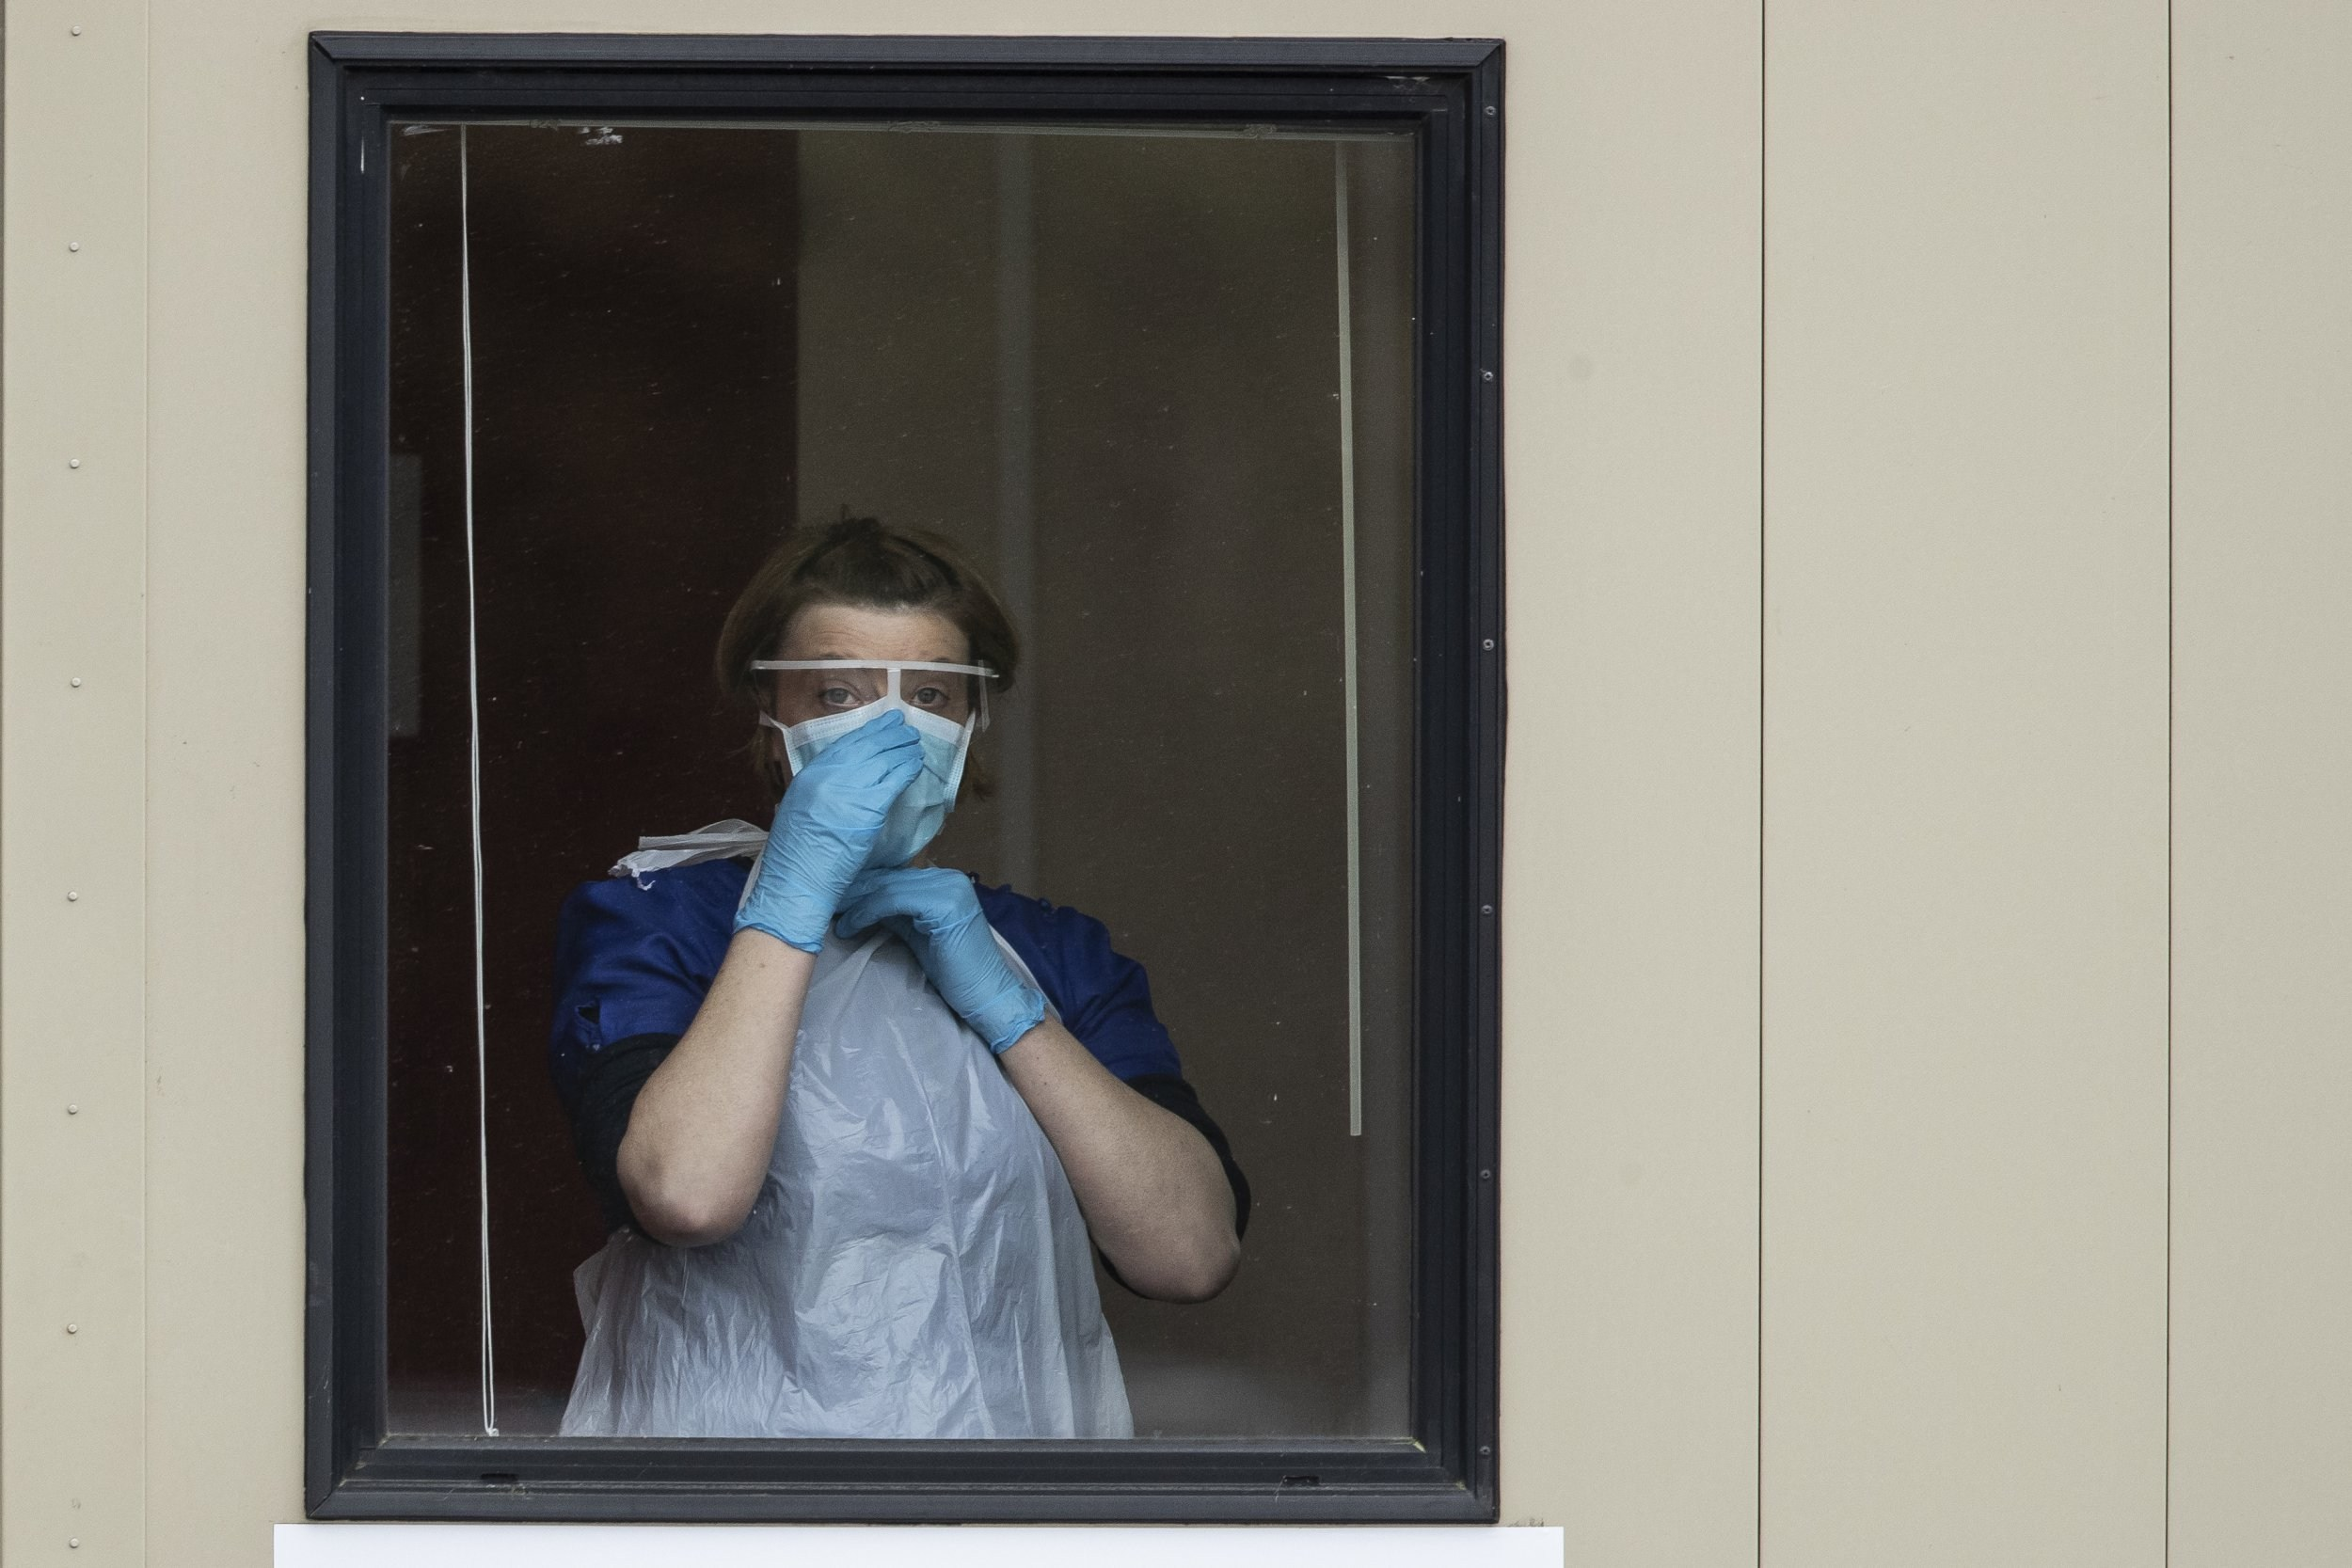 Coronavirus news live: UK death toll passes 26,097 including care home fatalities and first effective Covid-19 treatment has been found